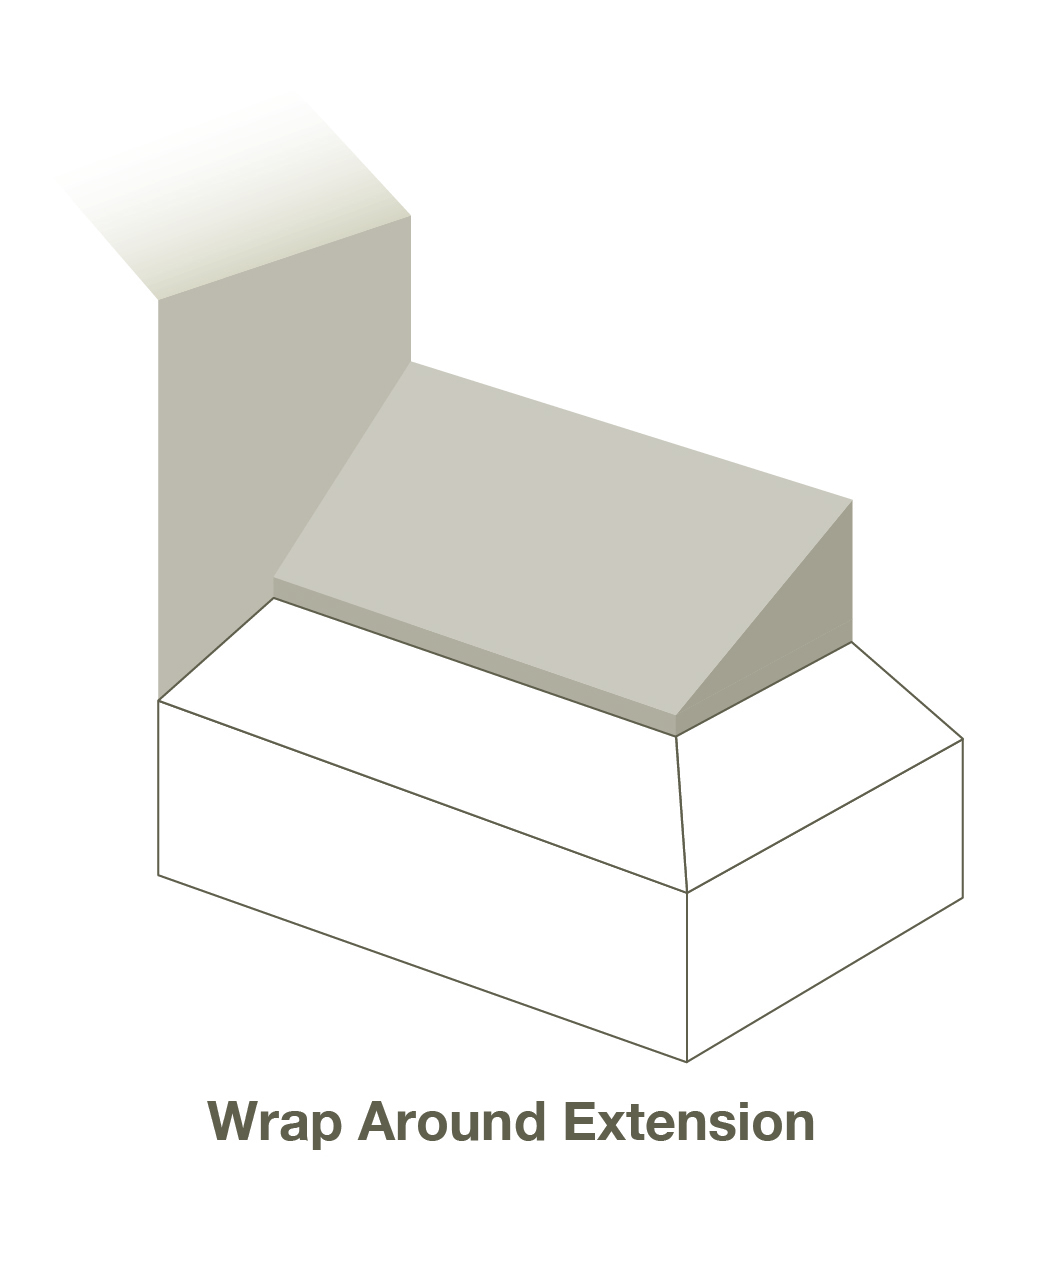 Simply Extend wrap around London home extension